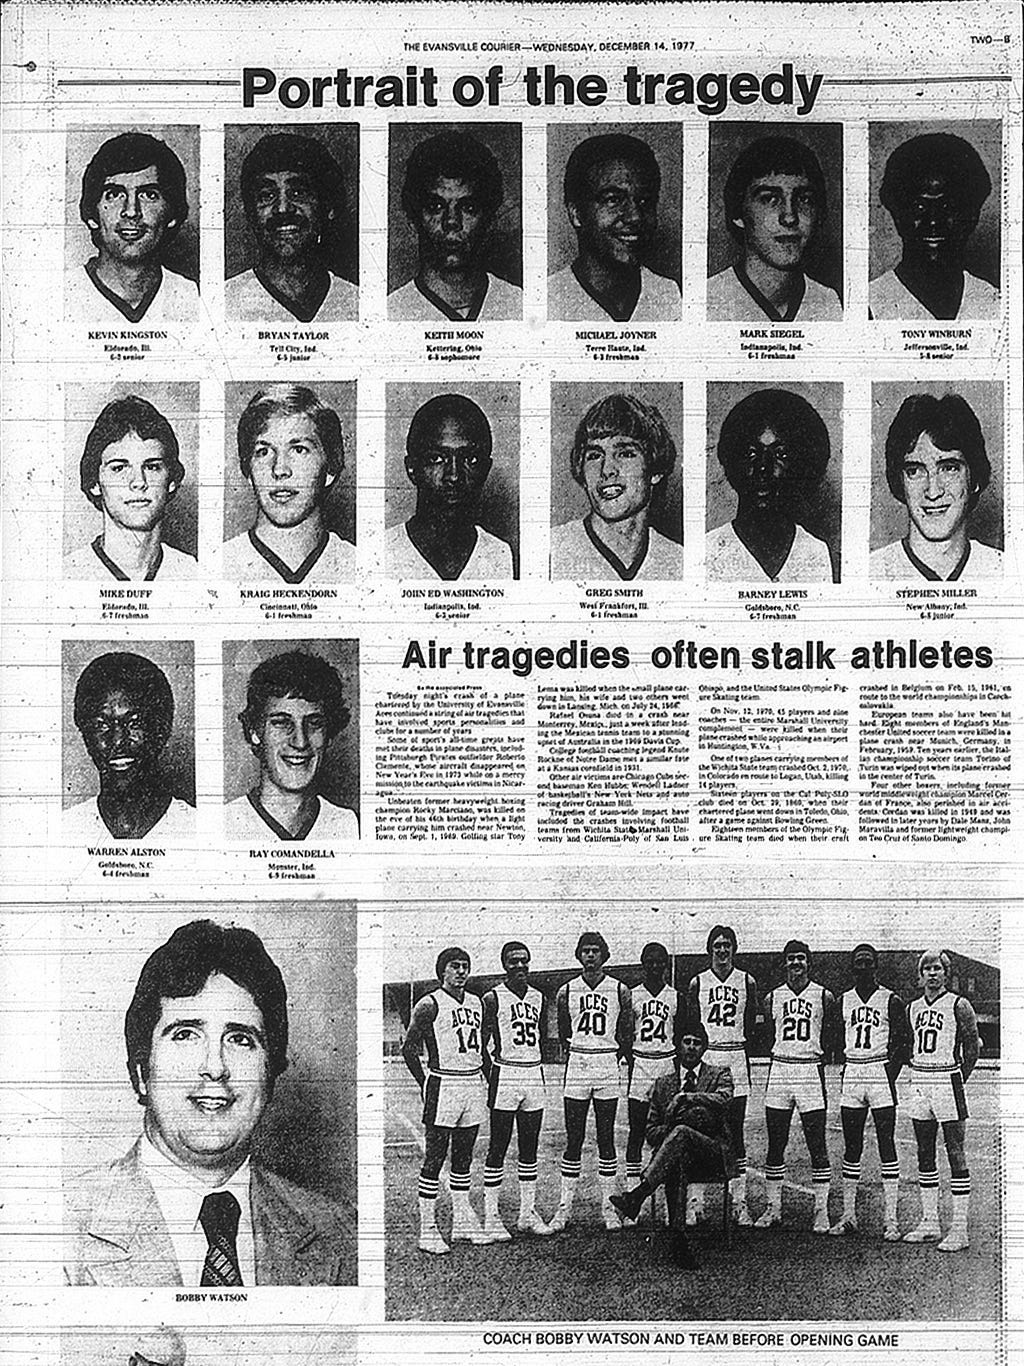 Remembering the Aces: 1977-78 season brought optimism, then tragedy